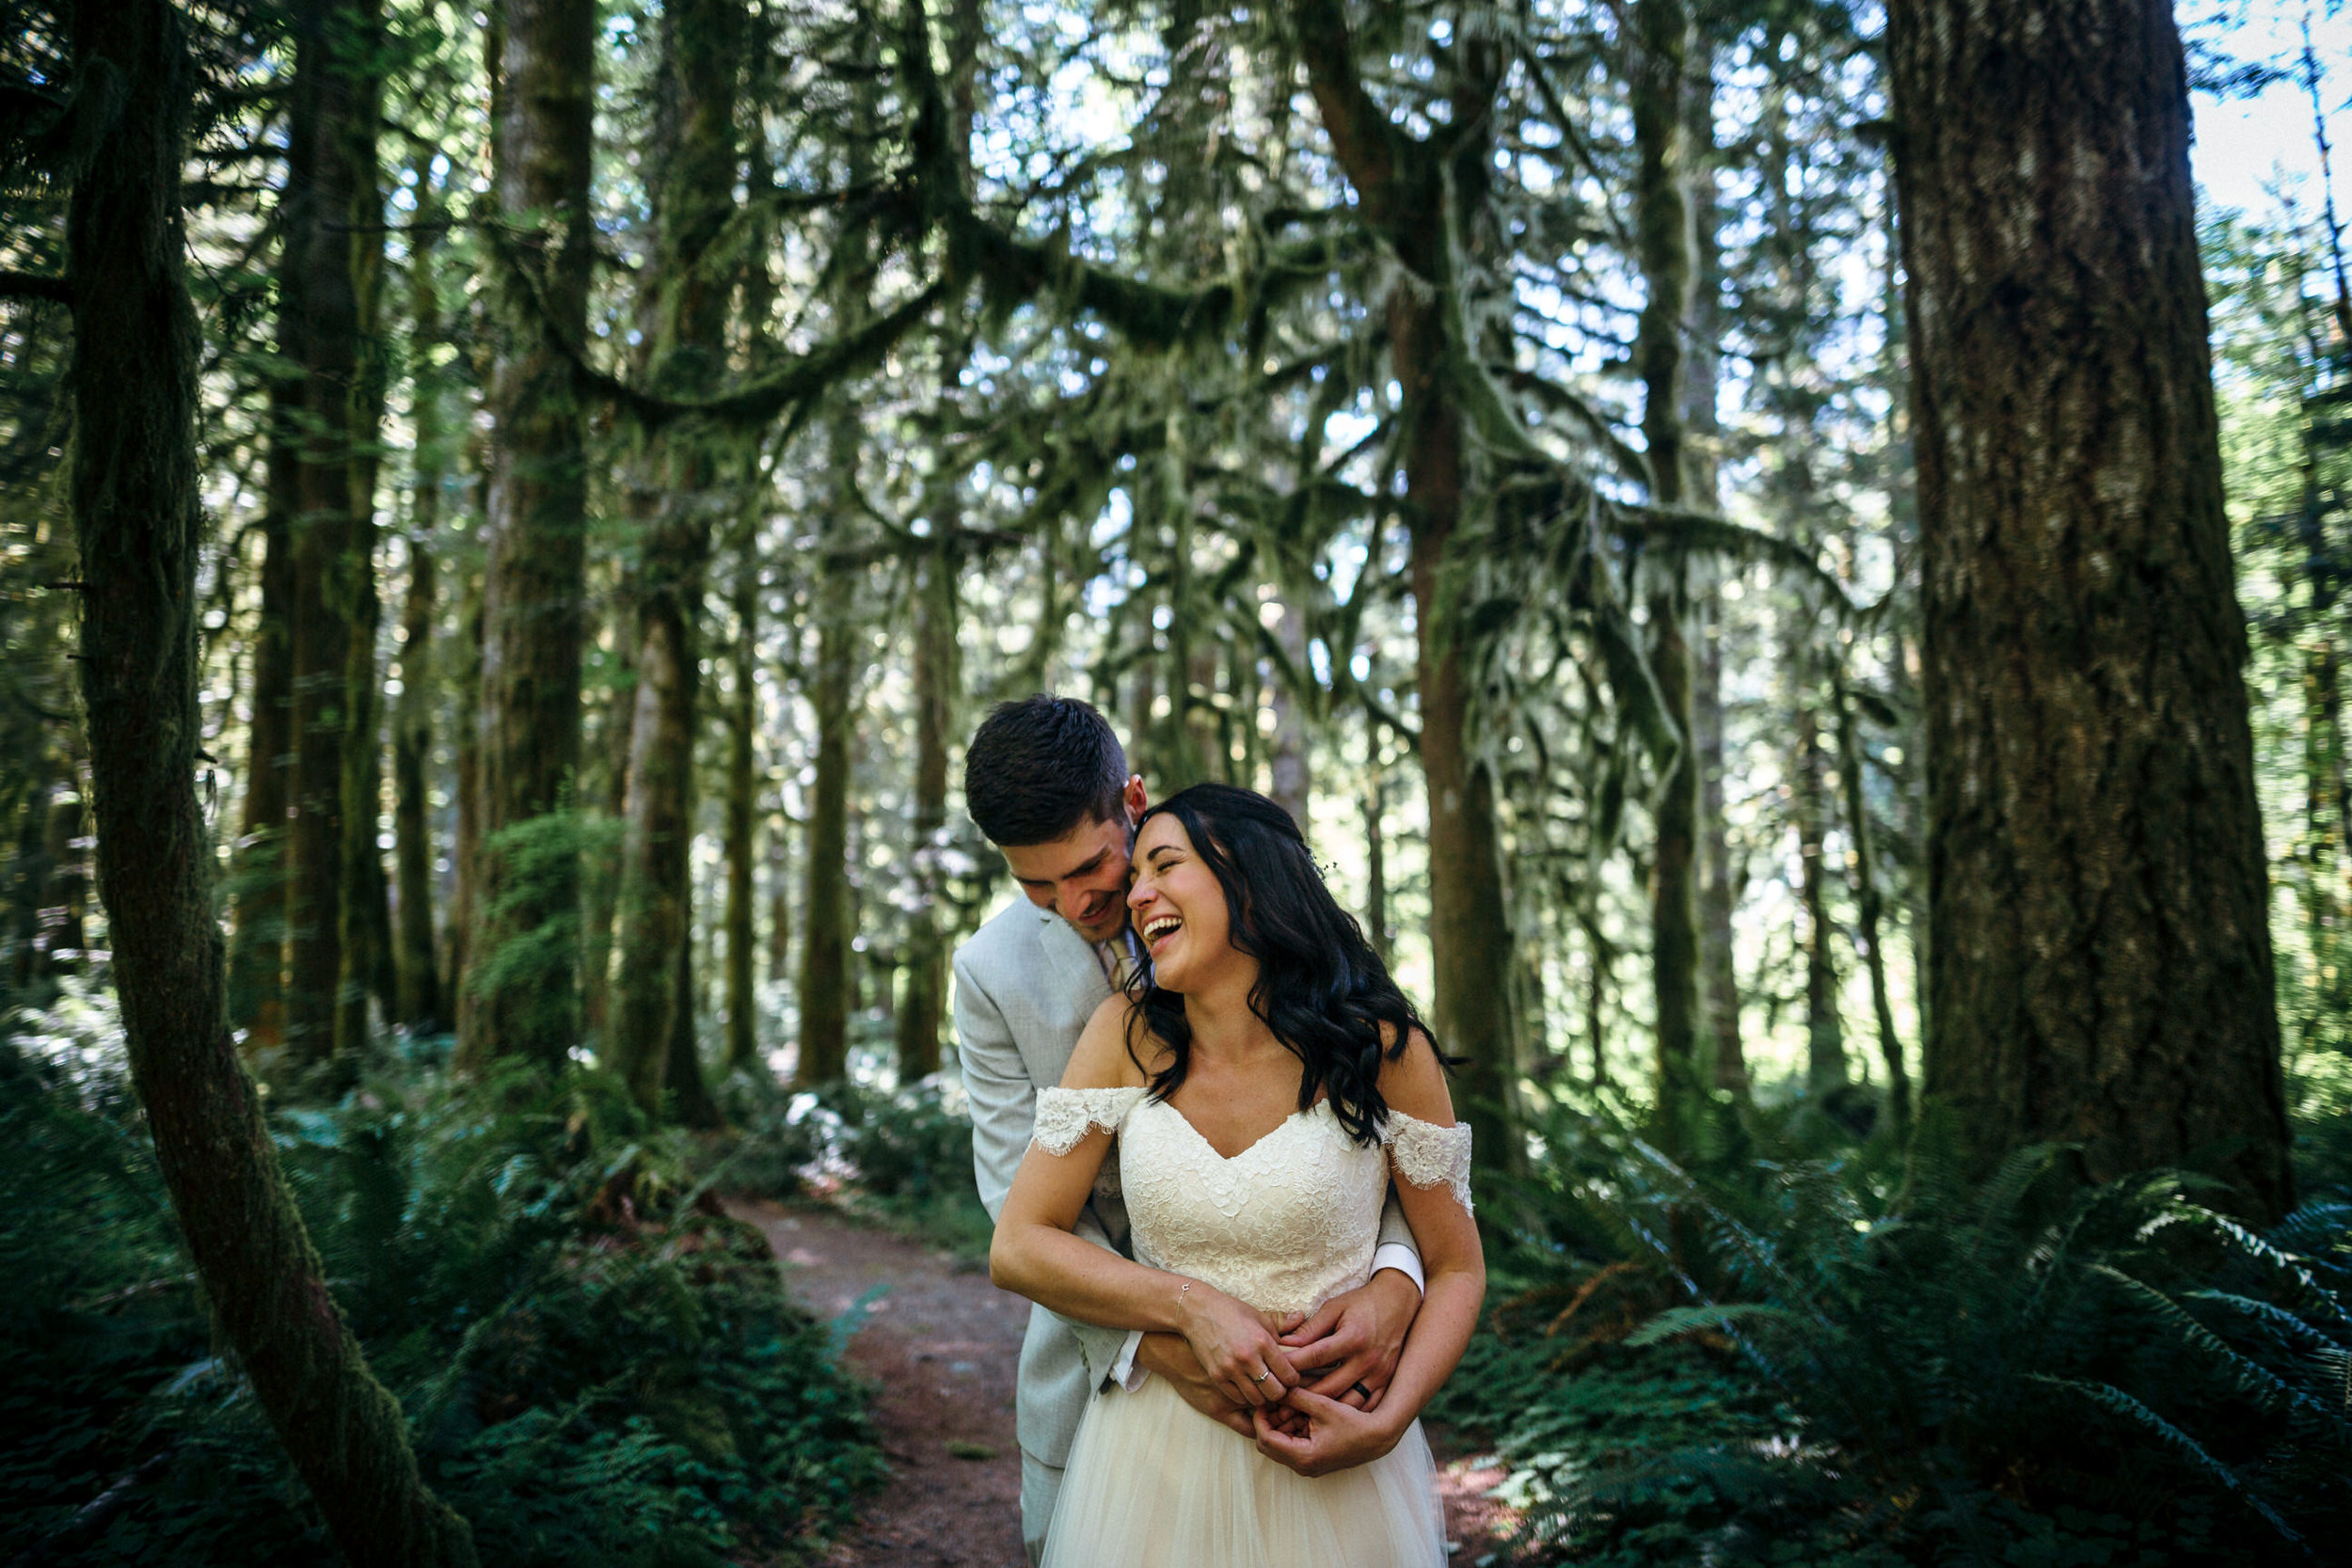 MT Hood Wildwood elopement wedding oregon portland photography0081.JPG